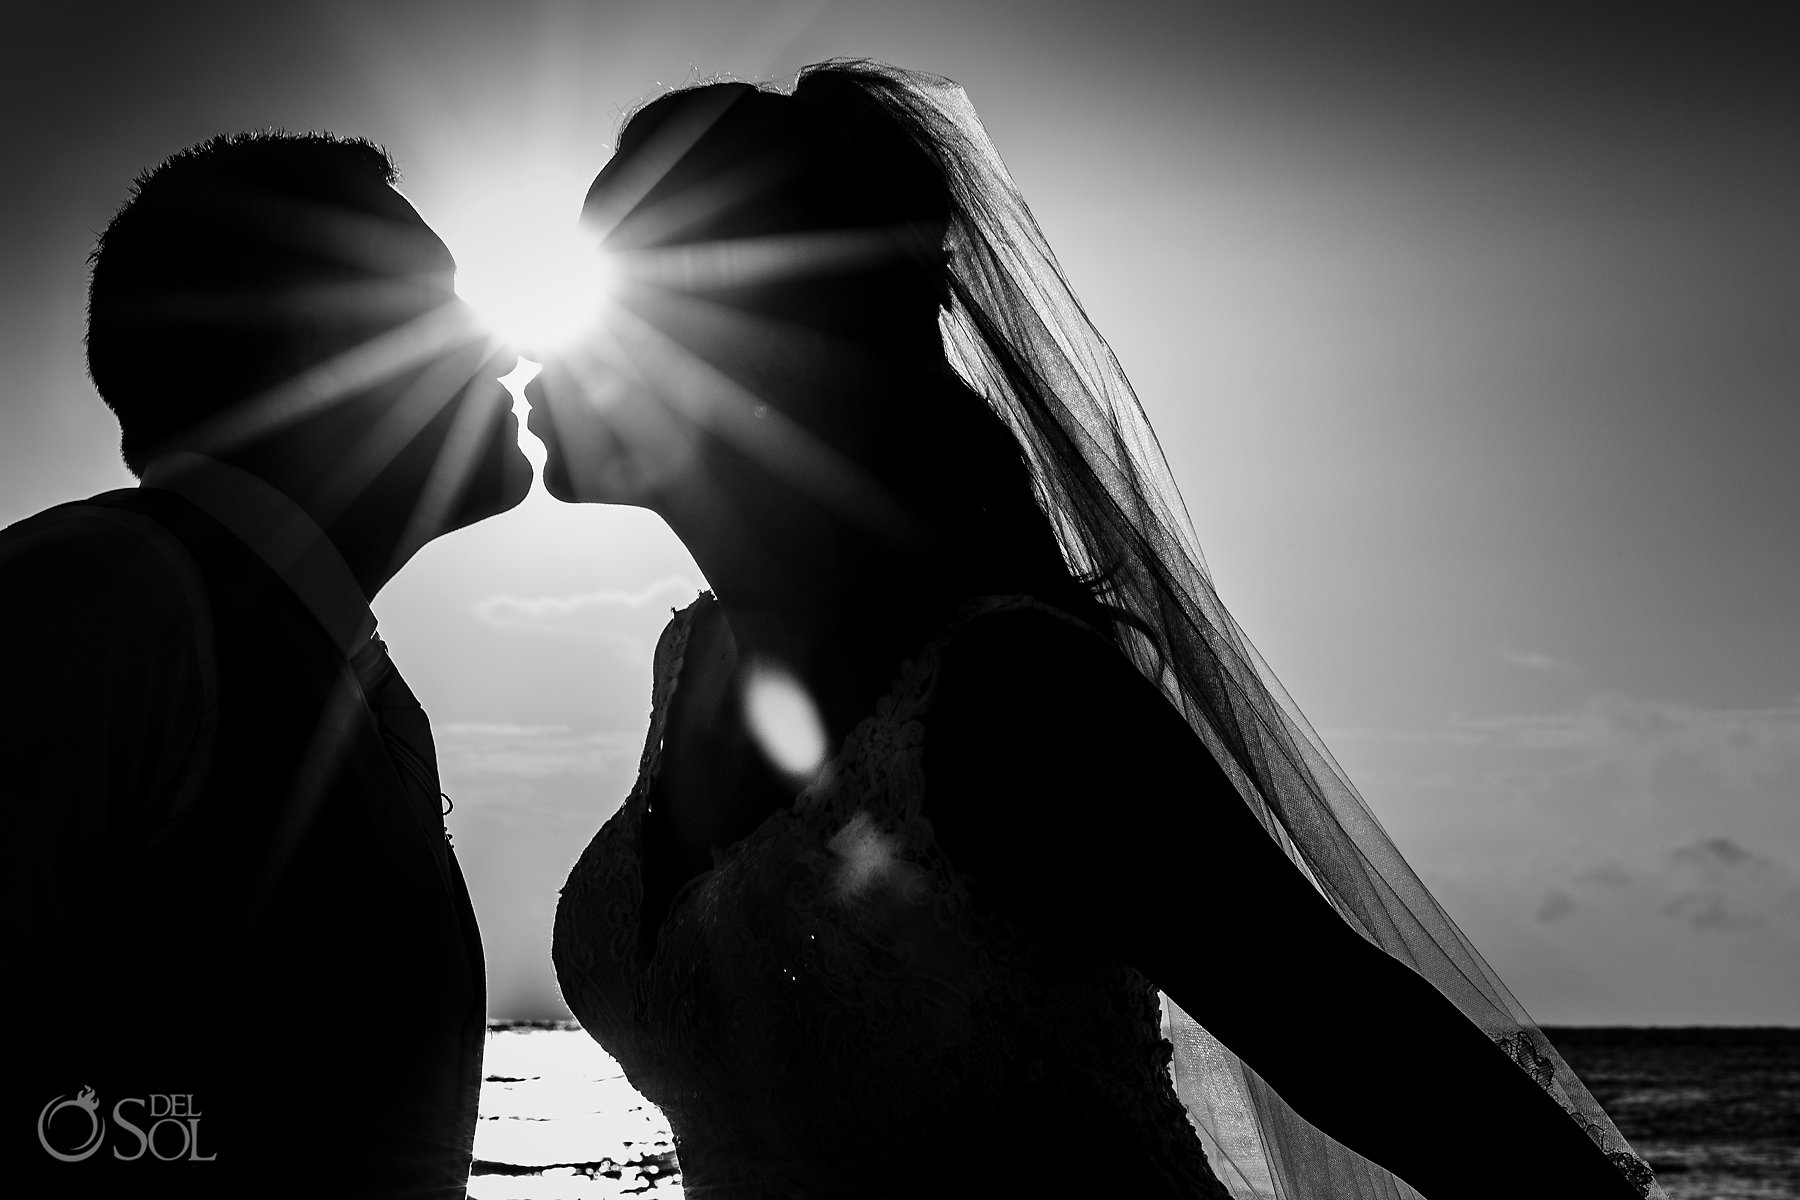 Bride and groom sunrise black and white silhouette portrait